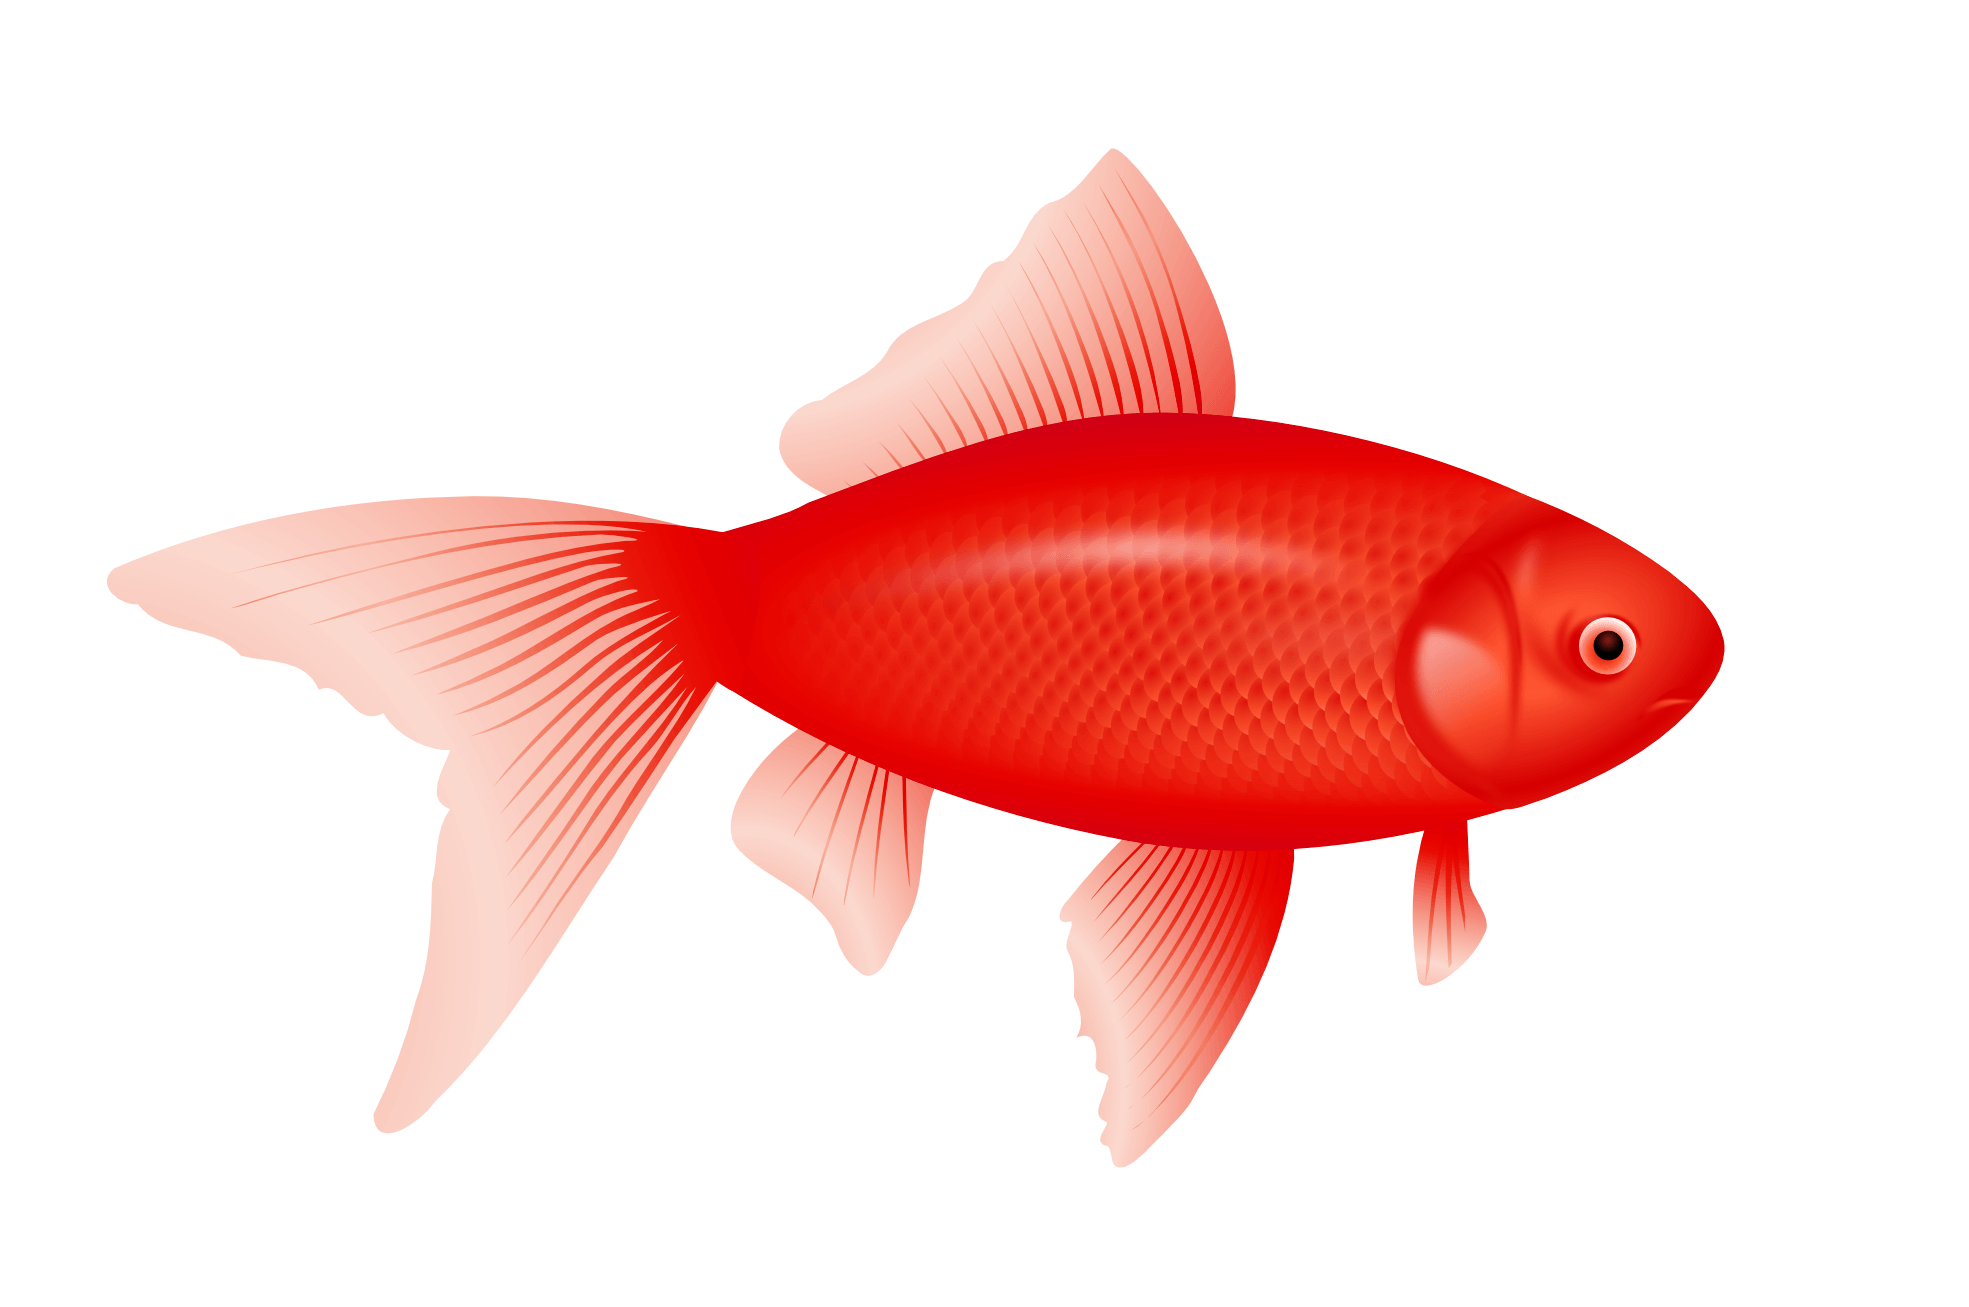 Red Fish Png Free Red Fish Png Transparent Images 62927 Pngio